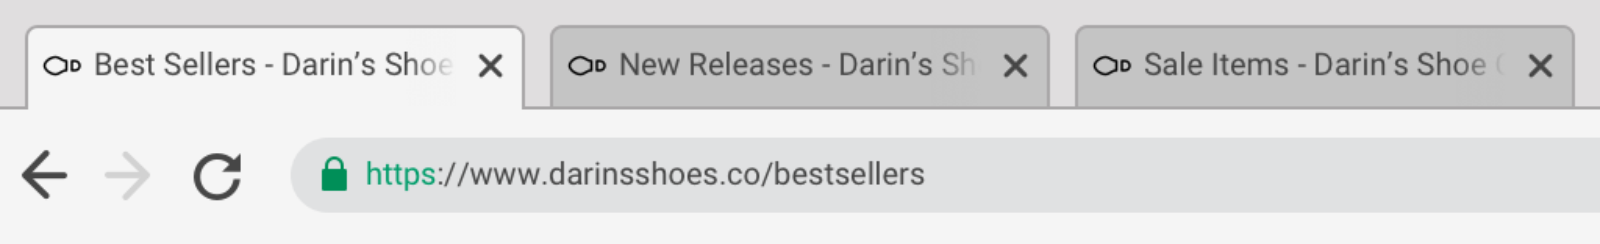 "Tabbed browser interface display three tabs that are labelled ""Best Sellers - Darin's Shoe Company"", ""New Releases - Darin's Shoe Company"", and ""Sale Items - Darin's Shoe Company"""